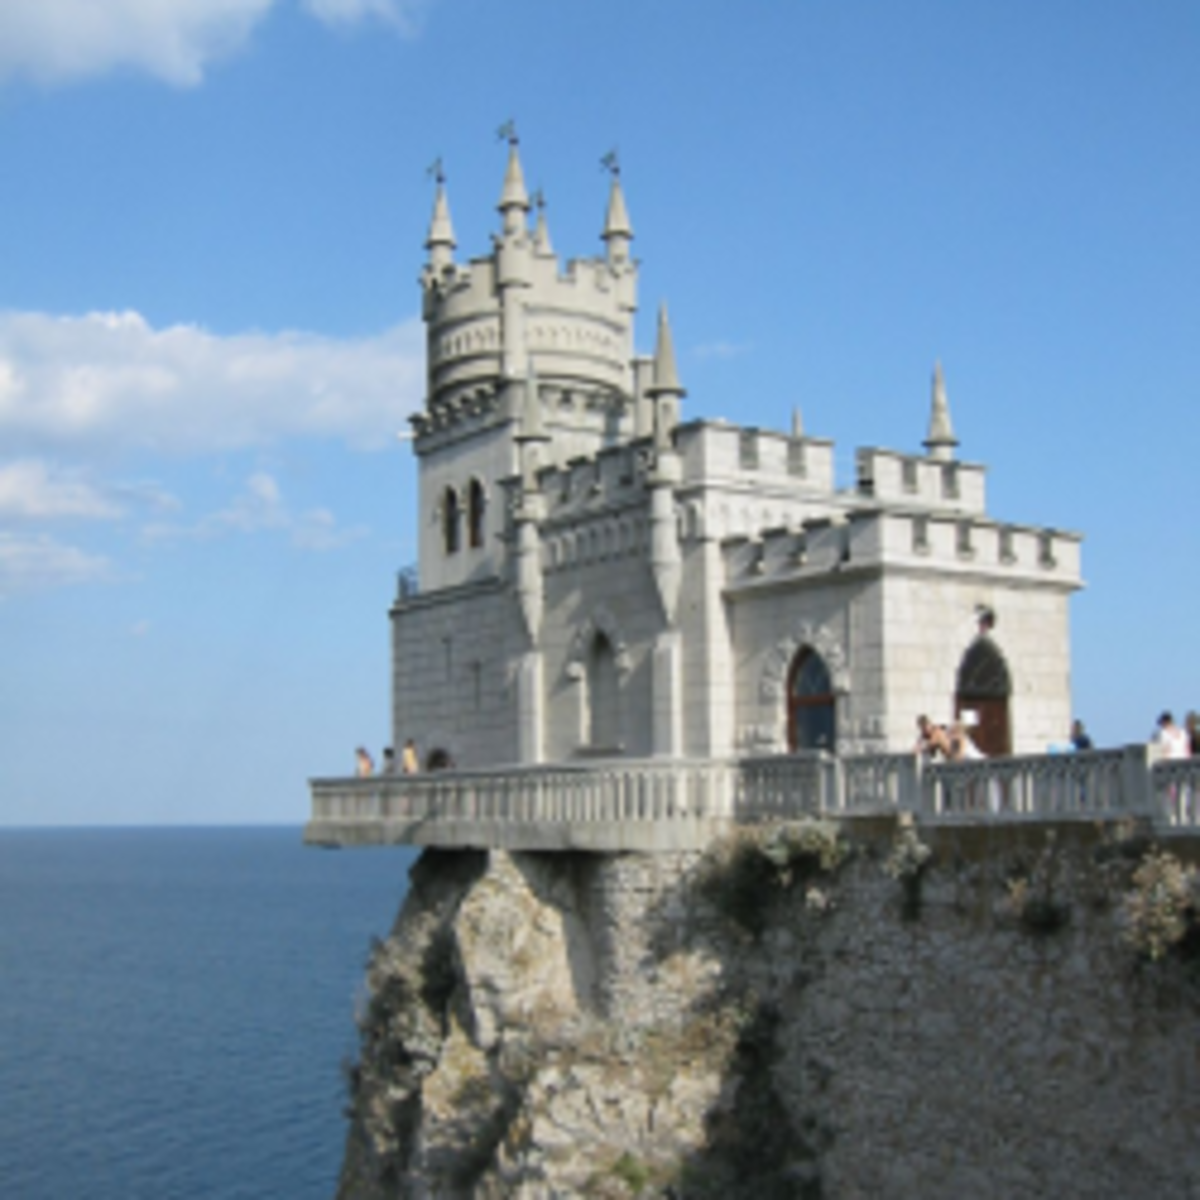 Crimea: The Best Tourist Destination in Southern Ukraine